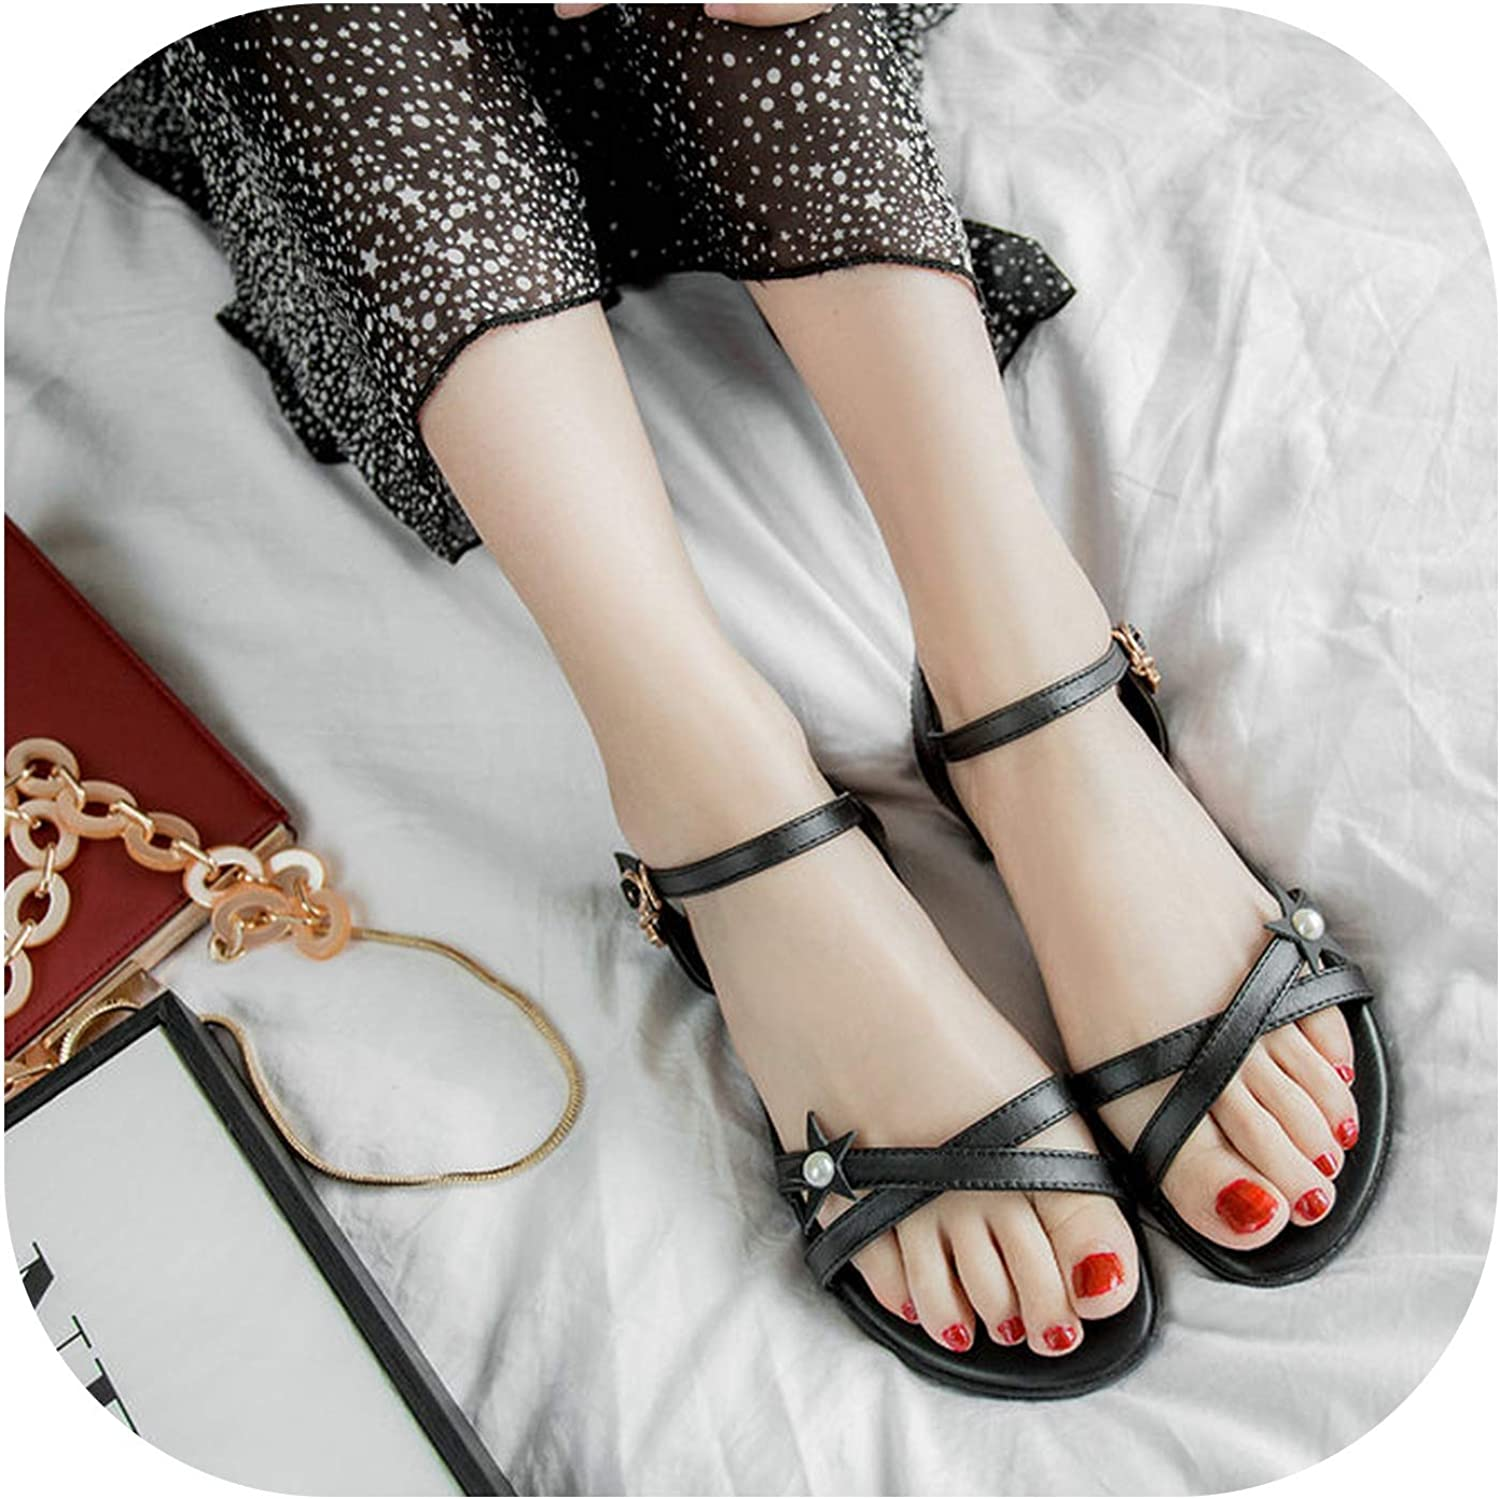 Women's Summer Casual shoes Comfortable Flat Heel Sandals Crystal Buckle Strap shoes Ladies White Black Size 34-43